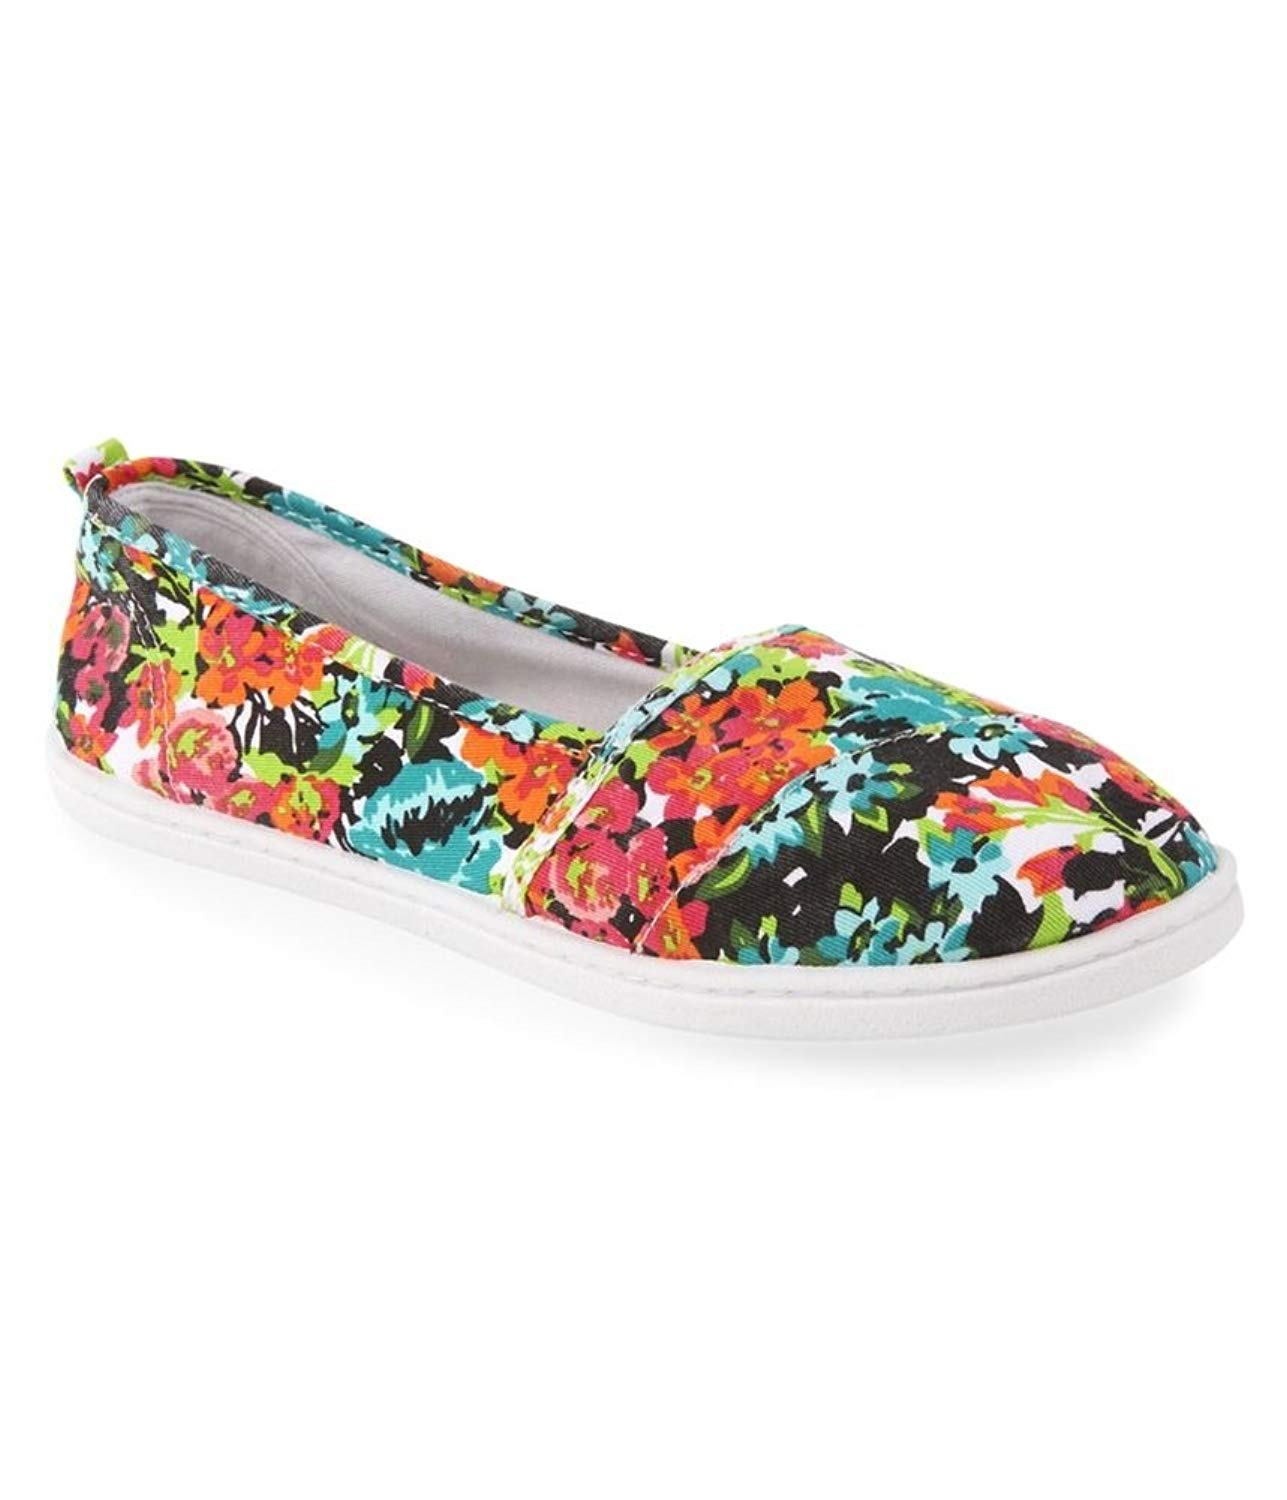 9470f4f050 Cheap Womens Floral Sneakers, find Womens Floral Sneakers deals on ...